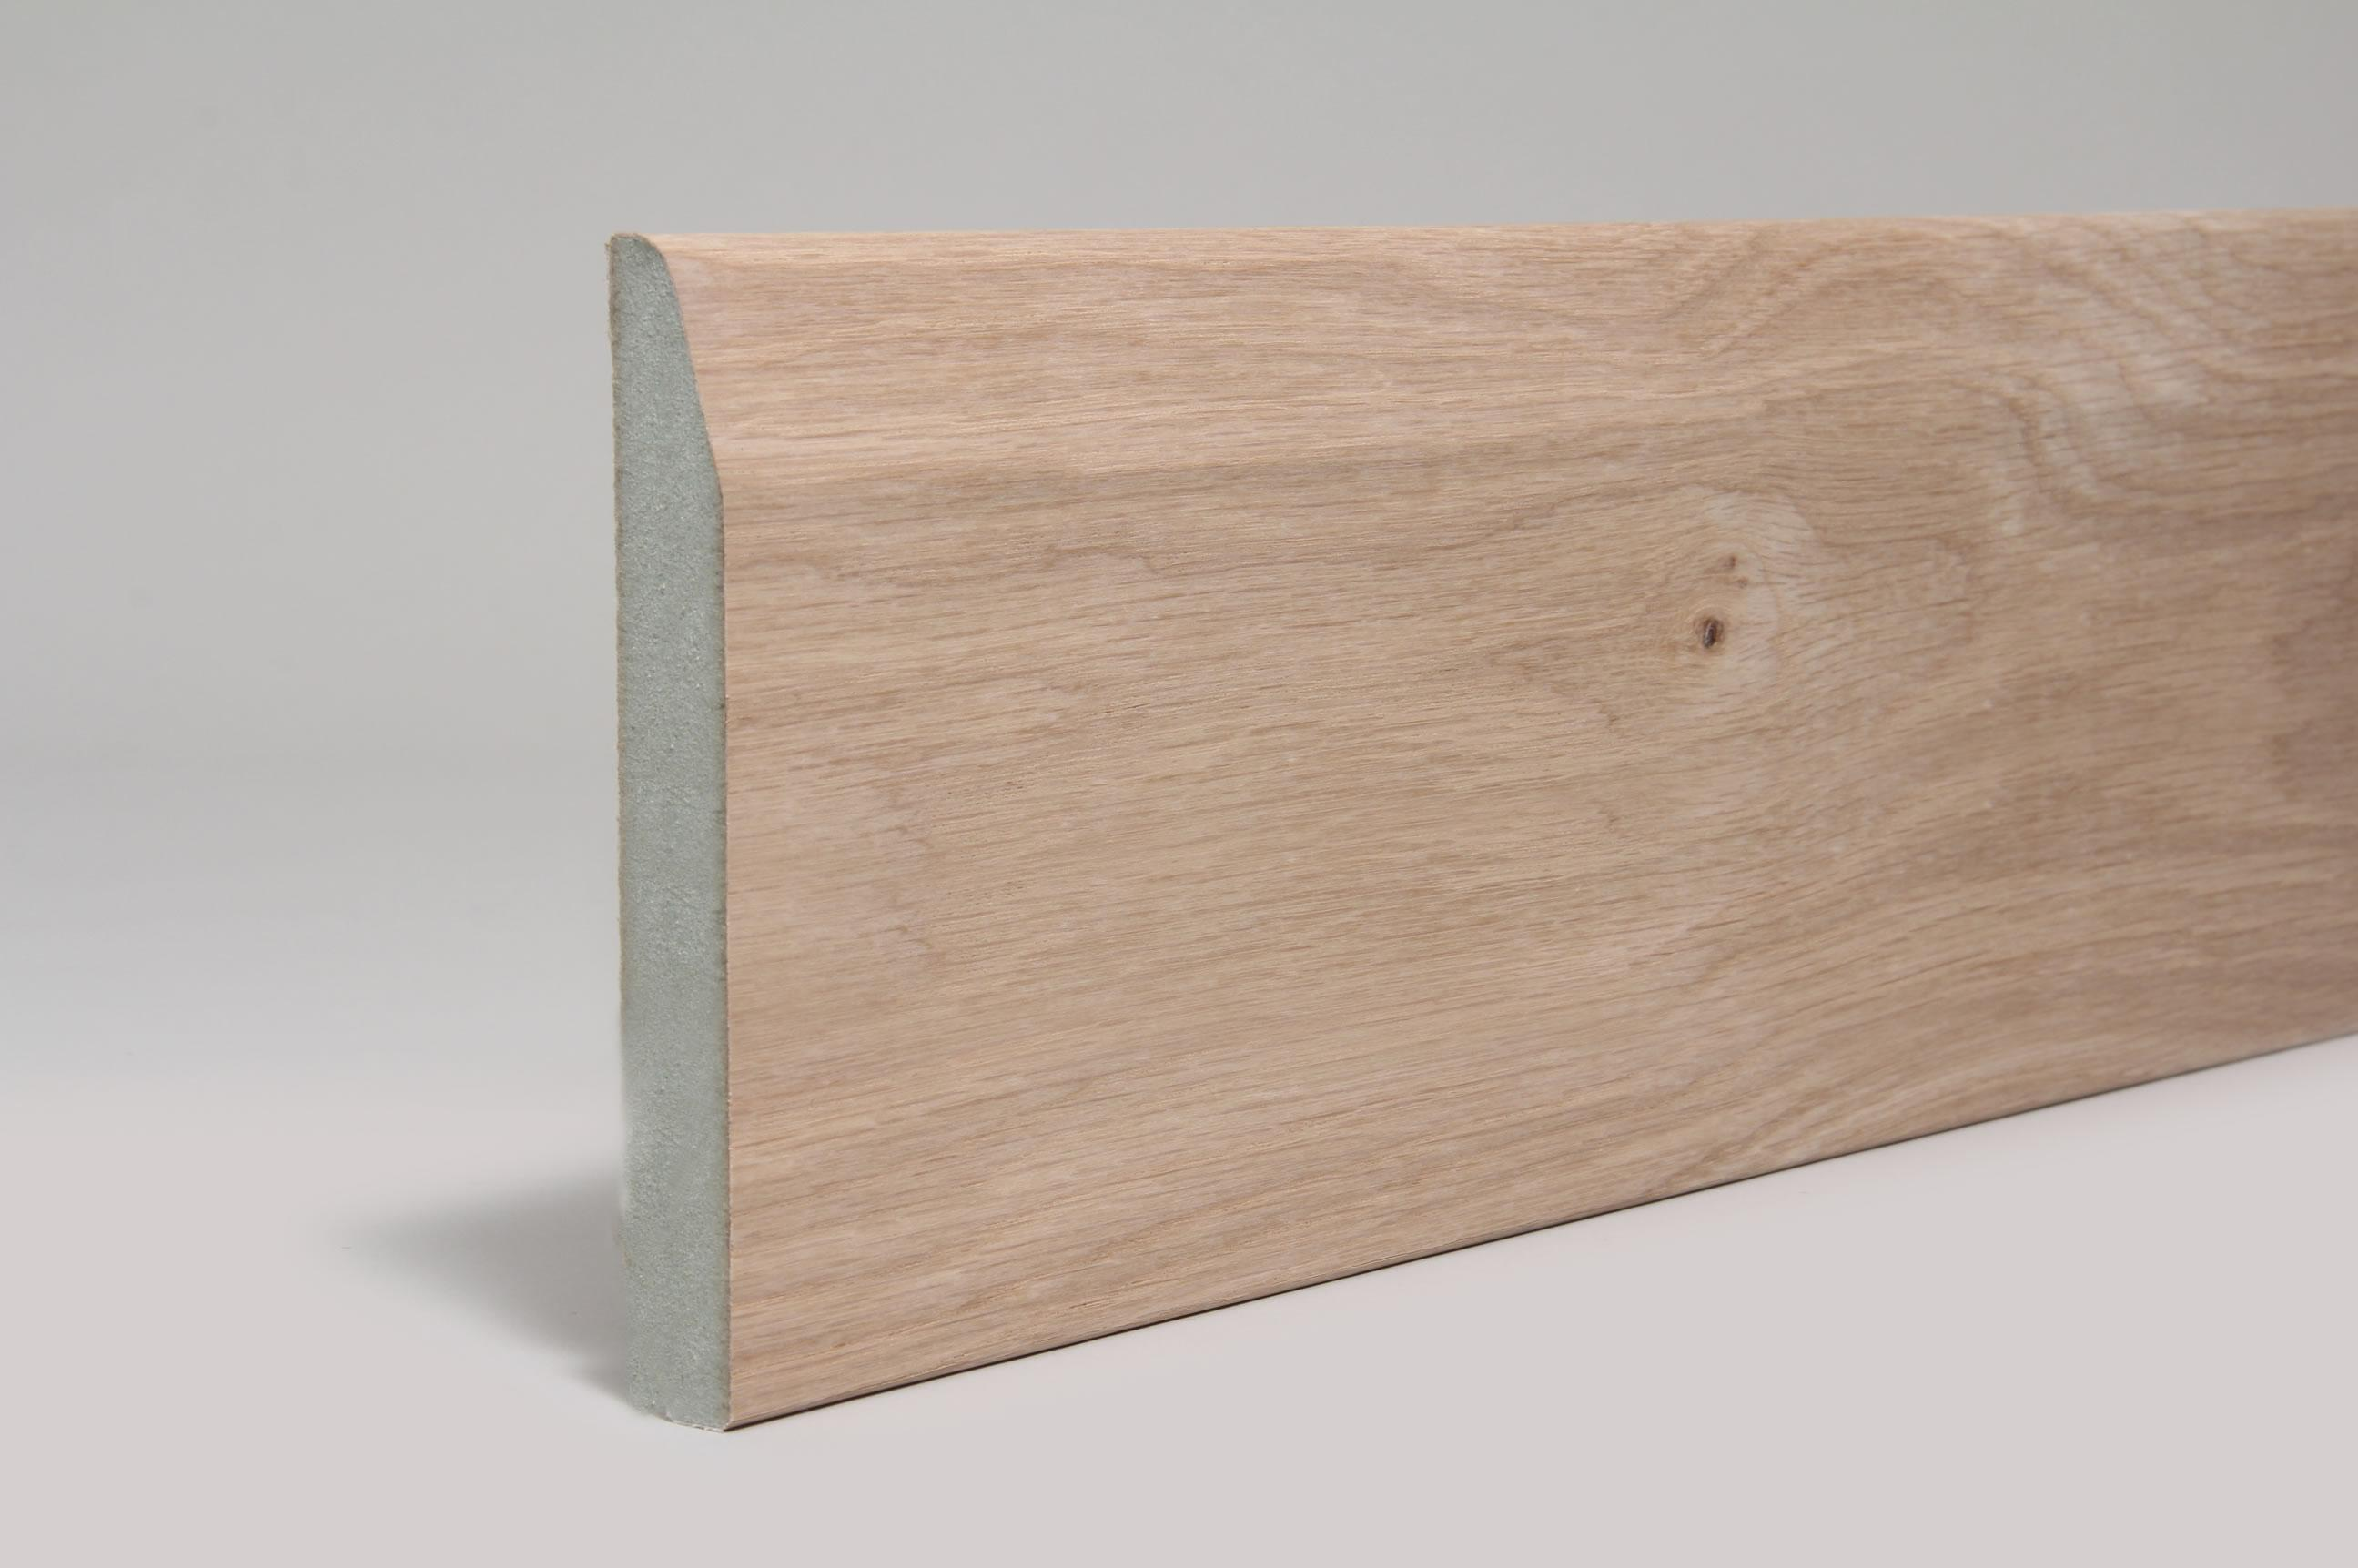 Chamfered & Rounded  18mm x 144mm x 4.4 Mtr Veneered American White Oak